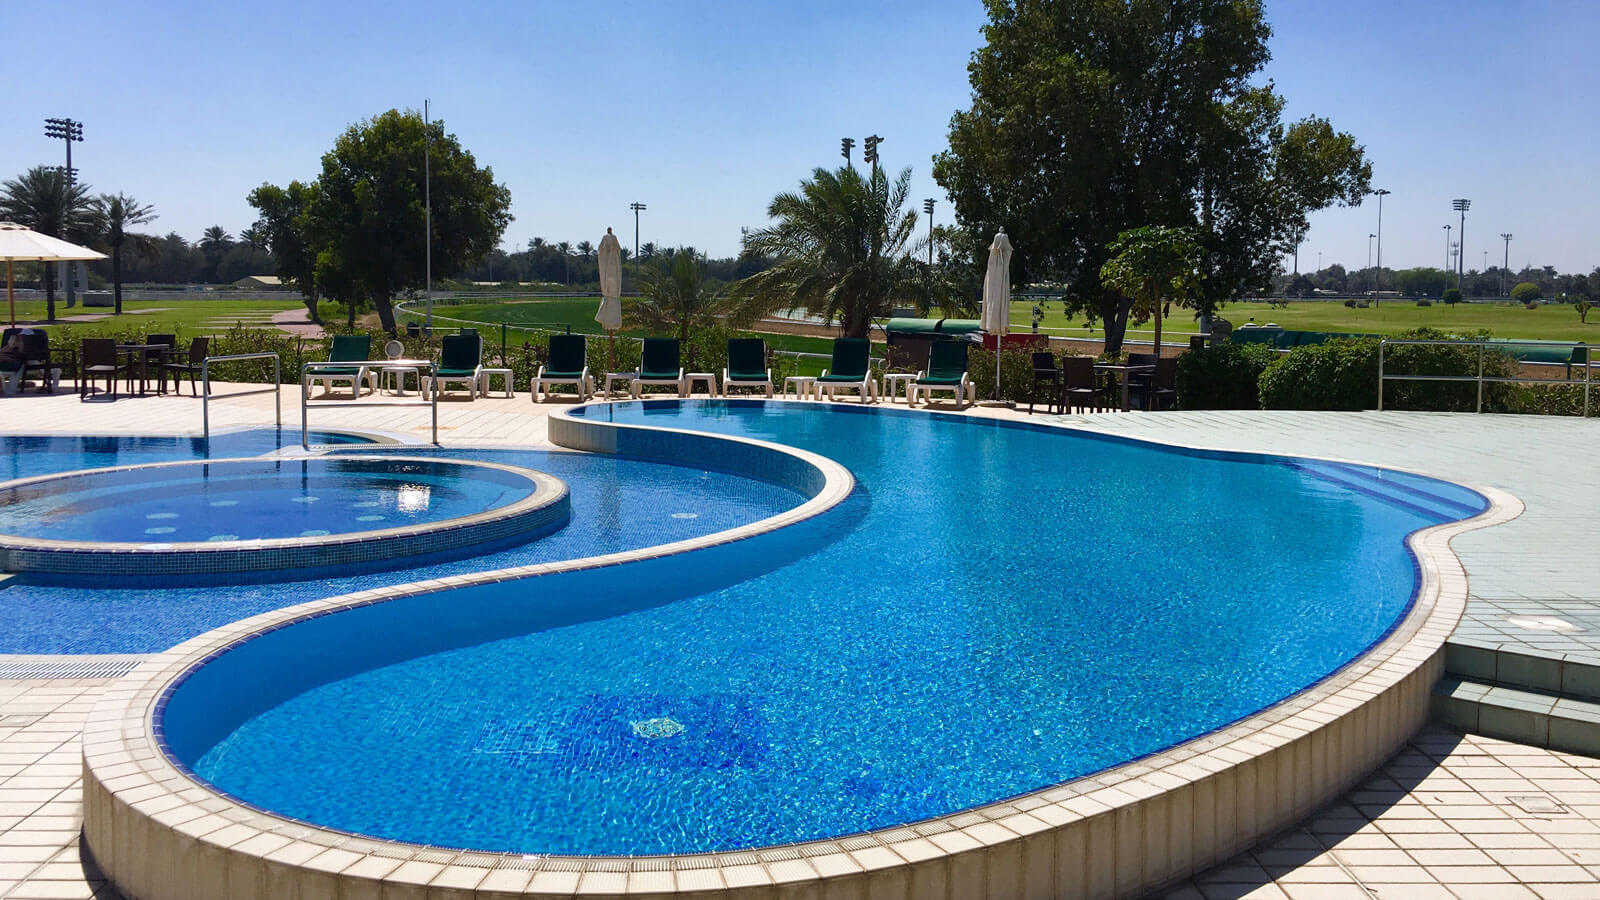 pool-1-abu-dhabi-city-golf-club.jpg